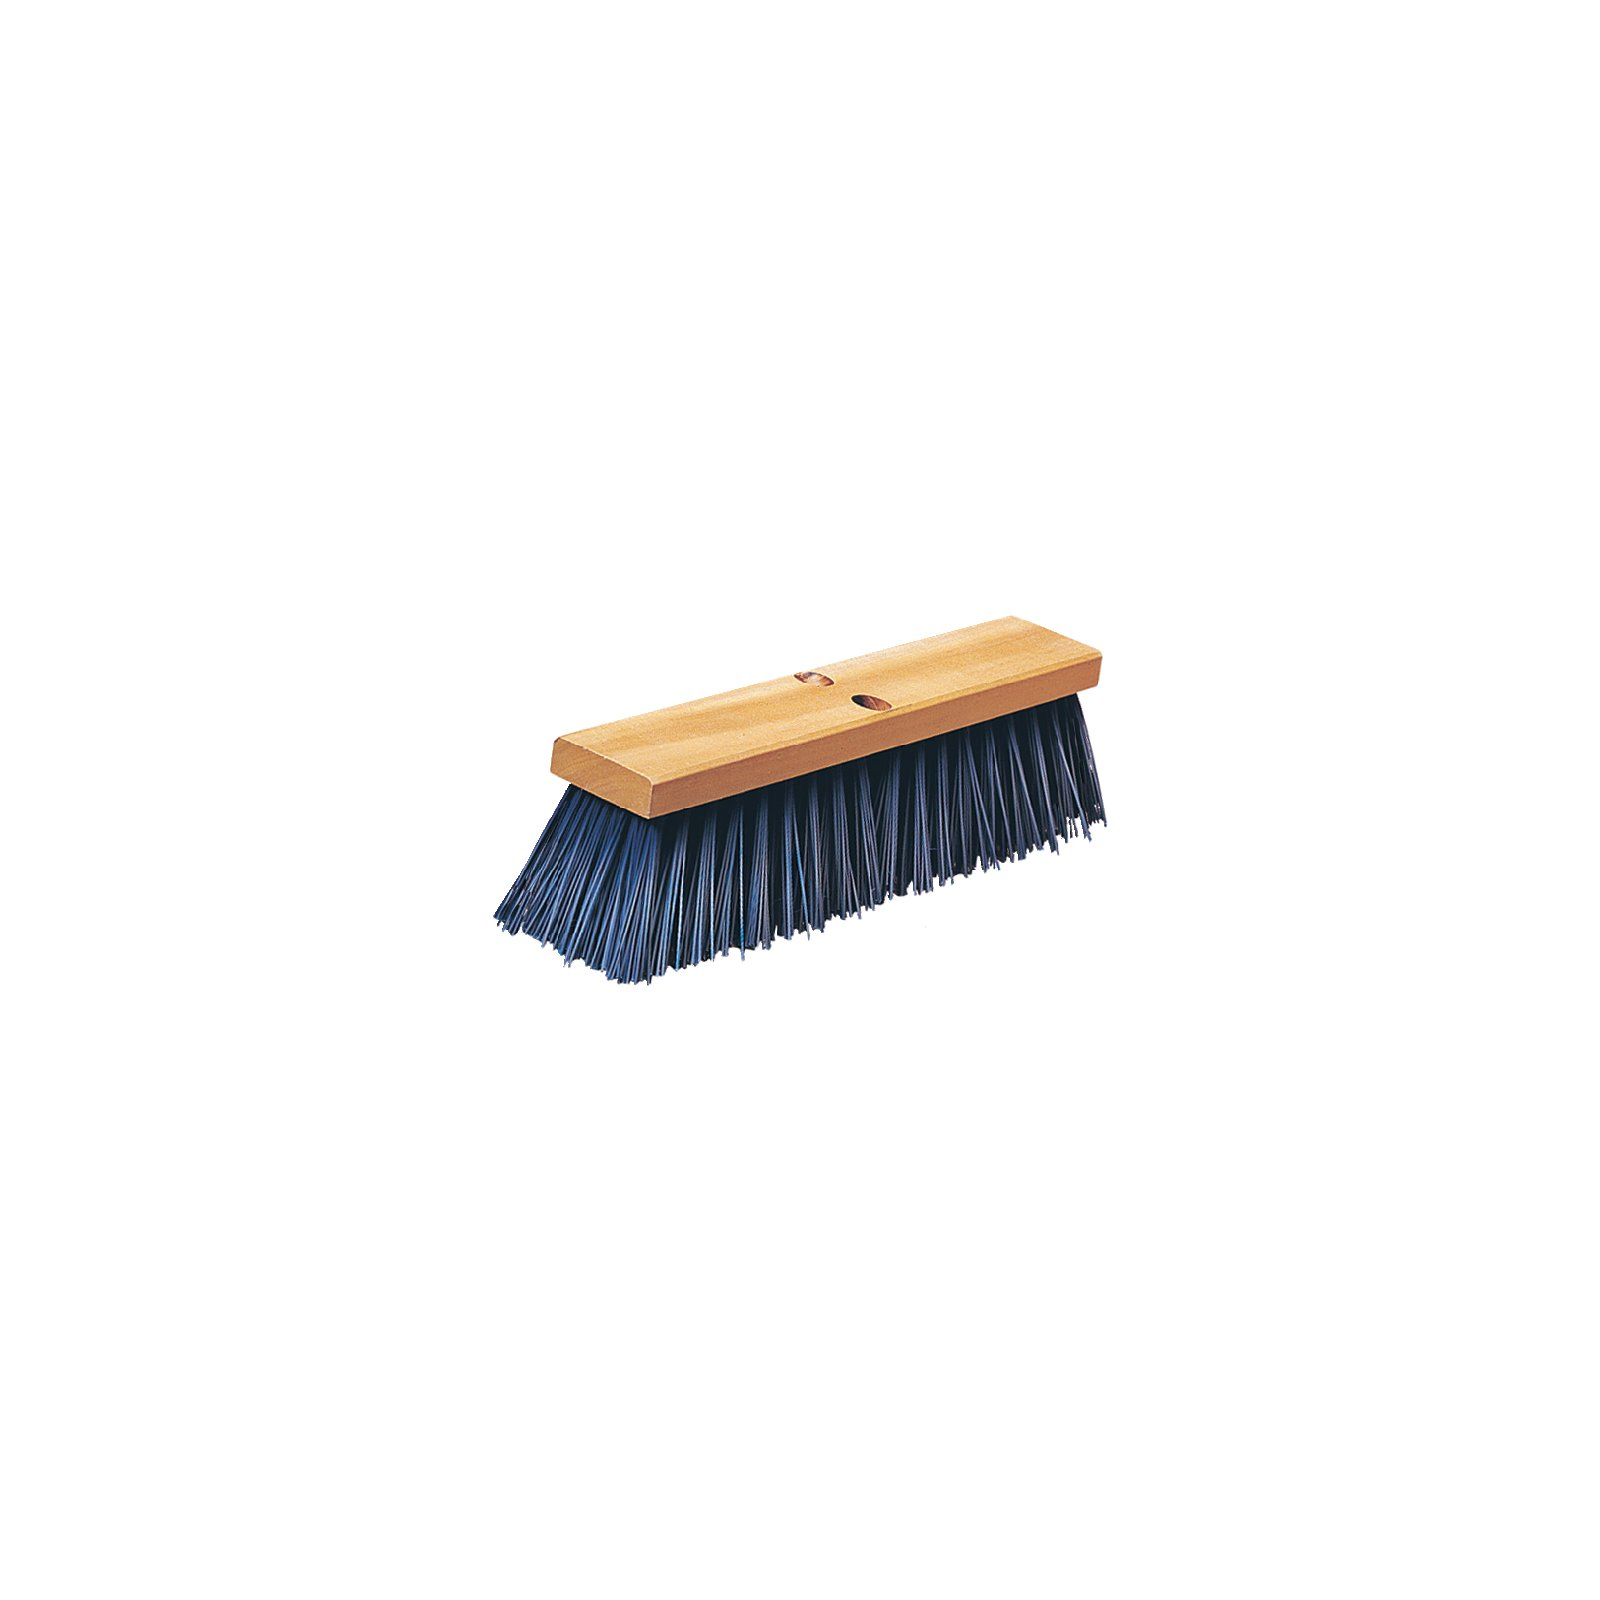 "BROOM 24"" HEAVY STREET SWEEP HARDWOOD BLOCK POLYPROPYLENE -"